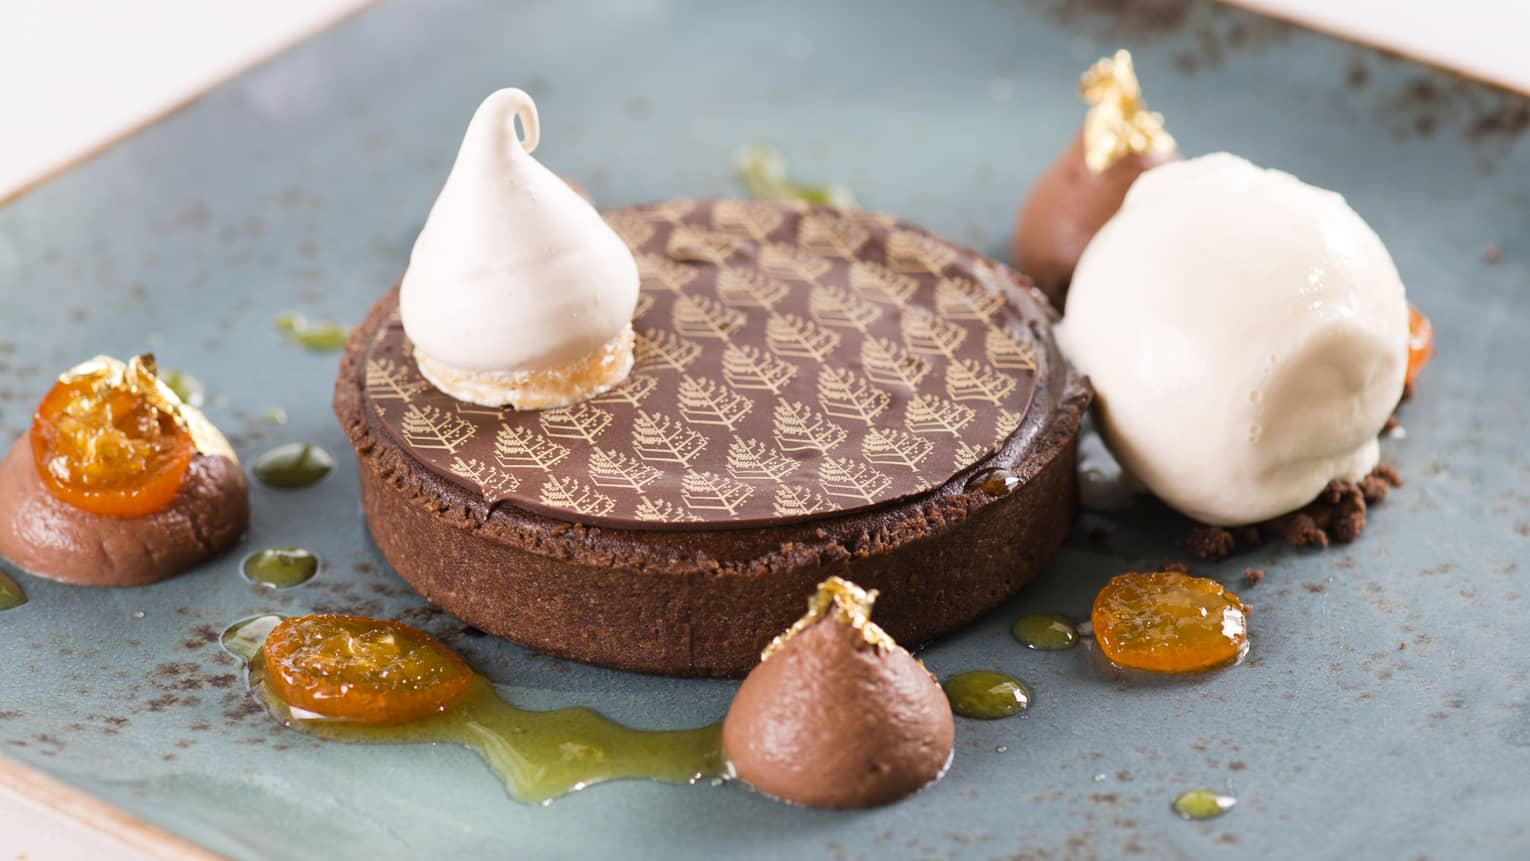 Tart covered by chocolate disc with Four Seasons logo print, small scoops of cream